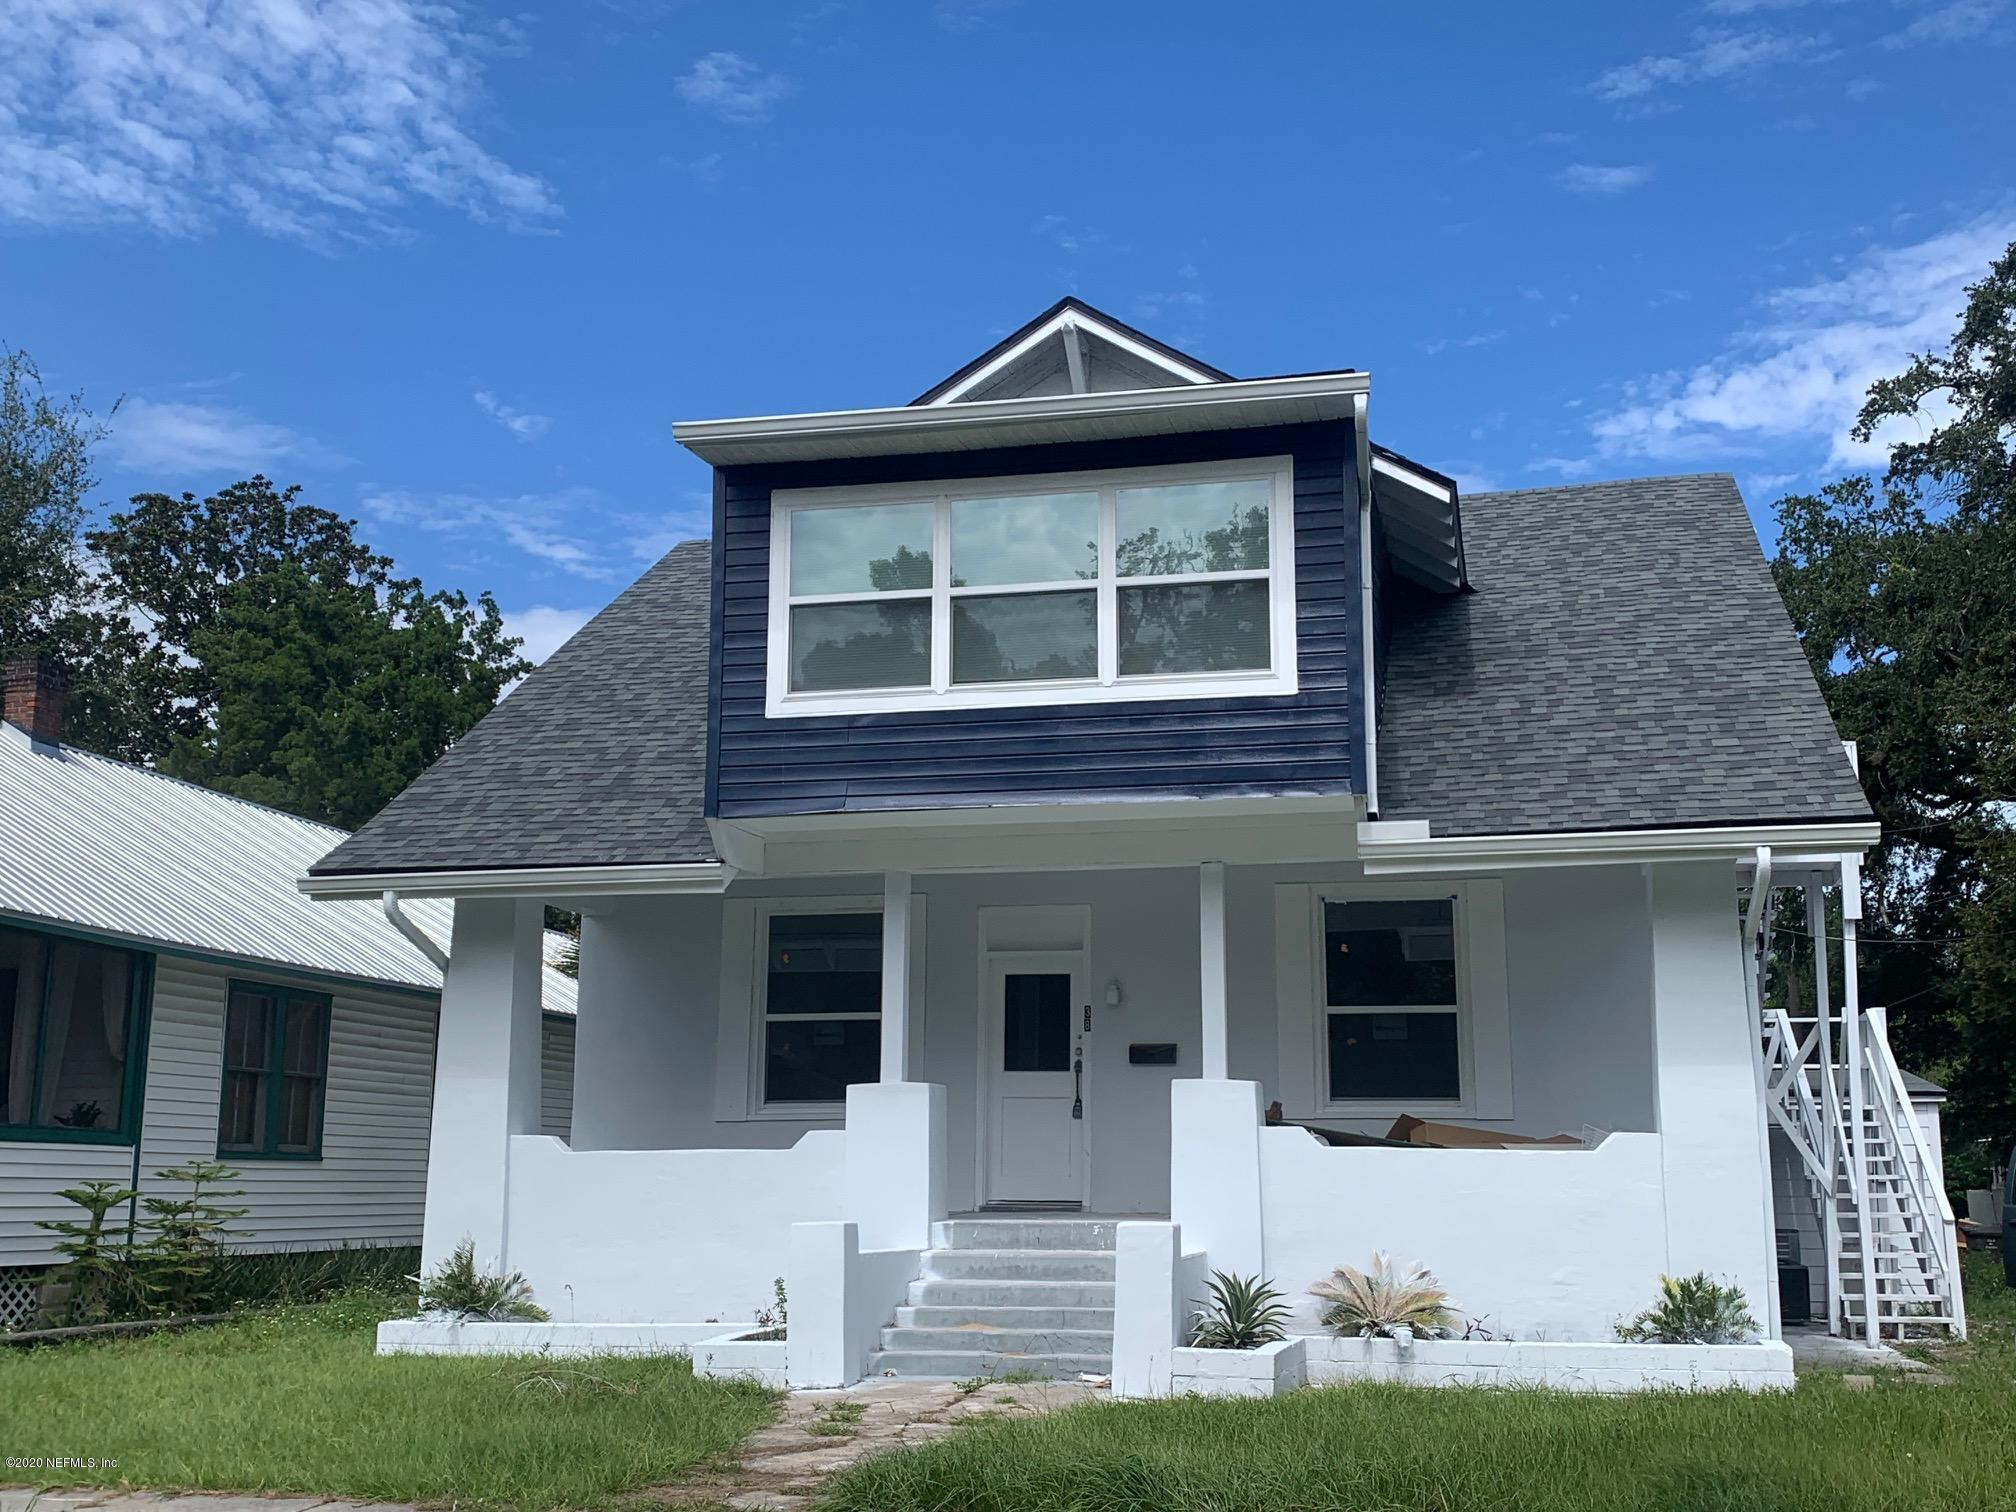 38 ROHDE, ST AUGUSTINE, FLORIDA 32084, 6 Bedrooms Bedrooms, ,4 BathroomsBathrooms,Investment / MultiFamily,For sale,ROHDE,1076086